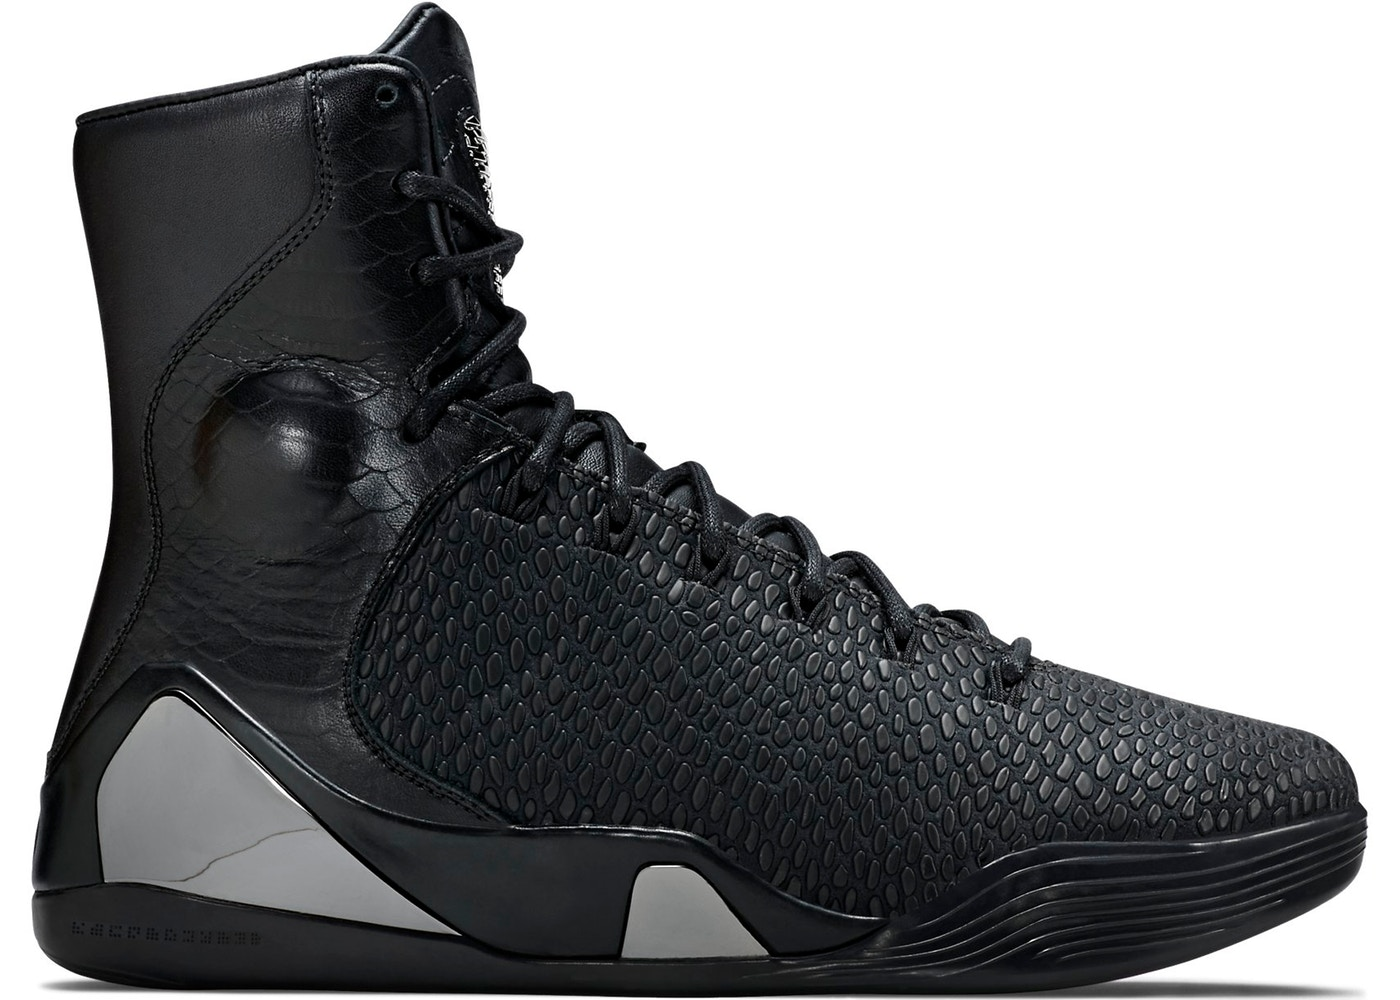 official photos 817c9 d2149 Kobe 9 High KRM EXT Black Mamba